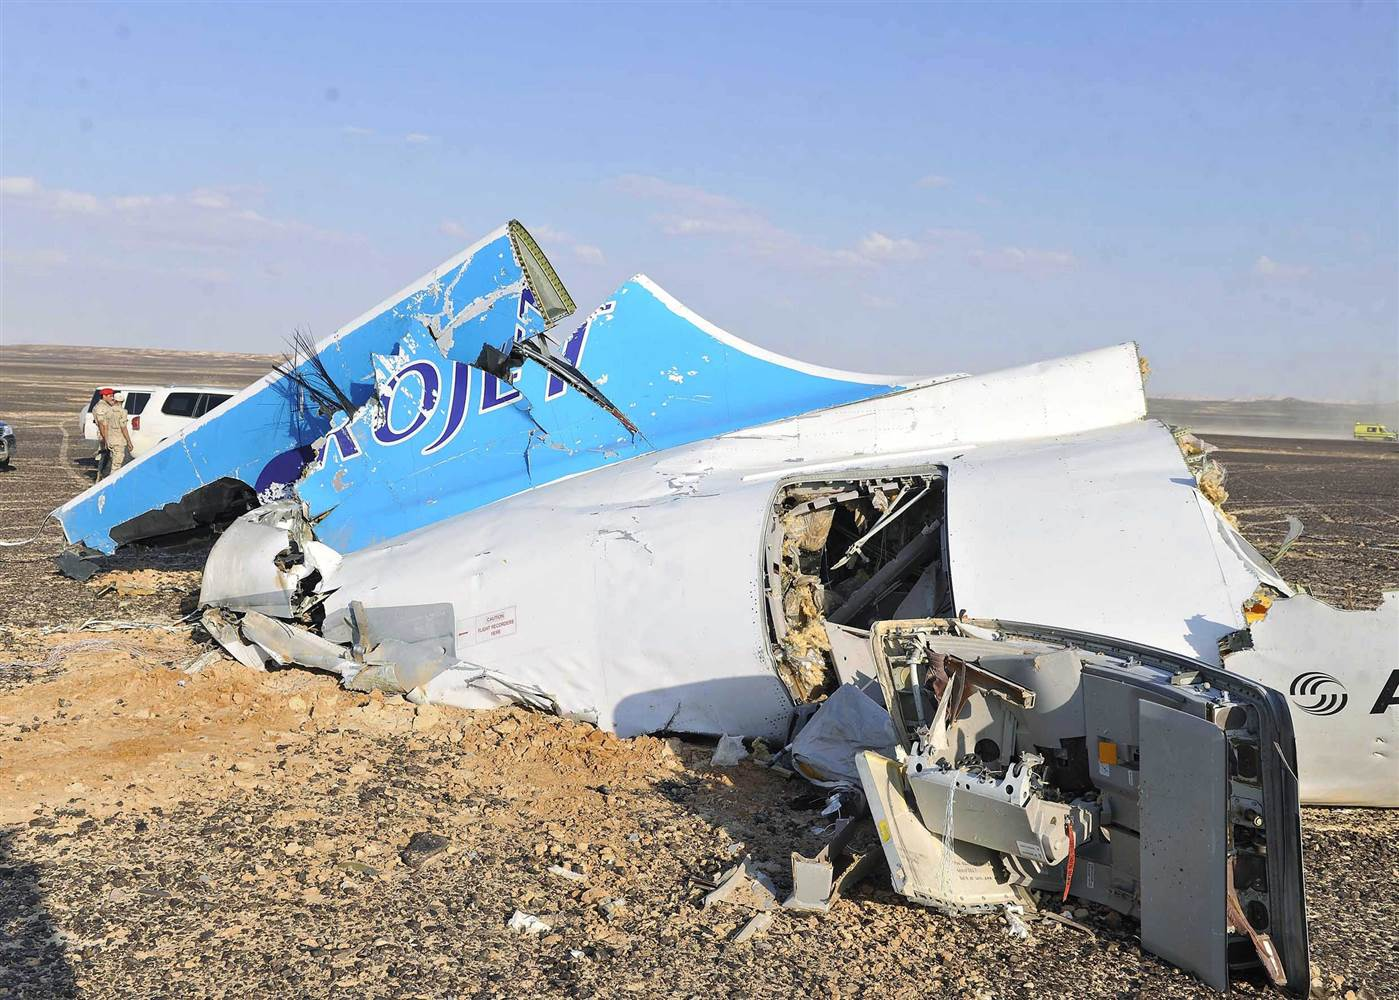 Two Russian Plane Crashes in one week - All Conspiracy Theories